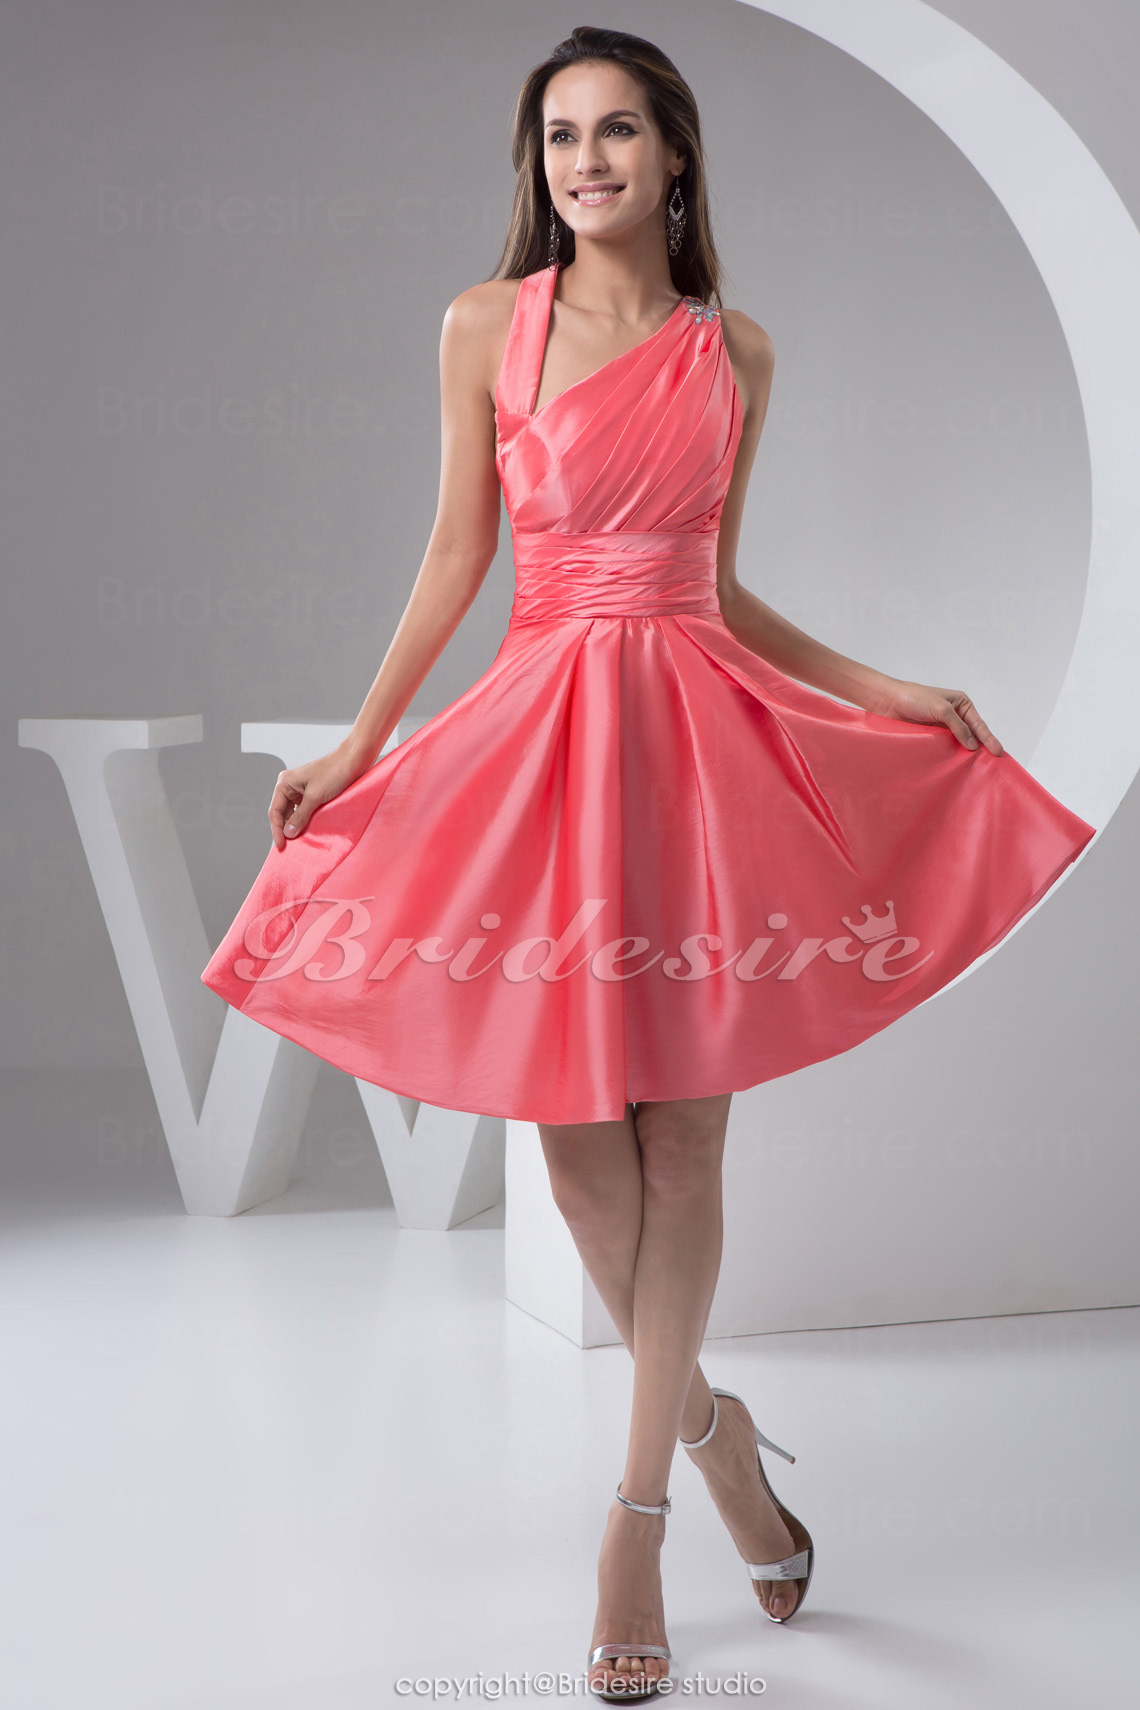 A-line Straps Short/Mini Sleeveless Taffeta Bridesmaid Dress